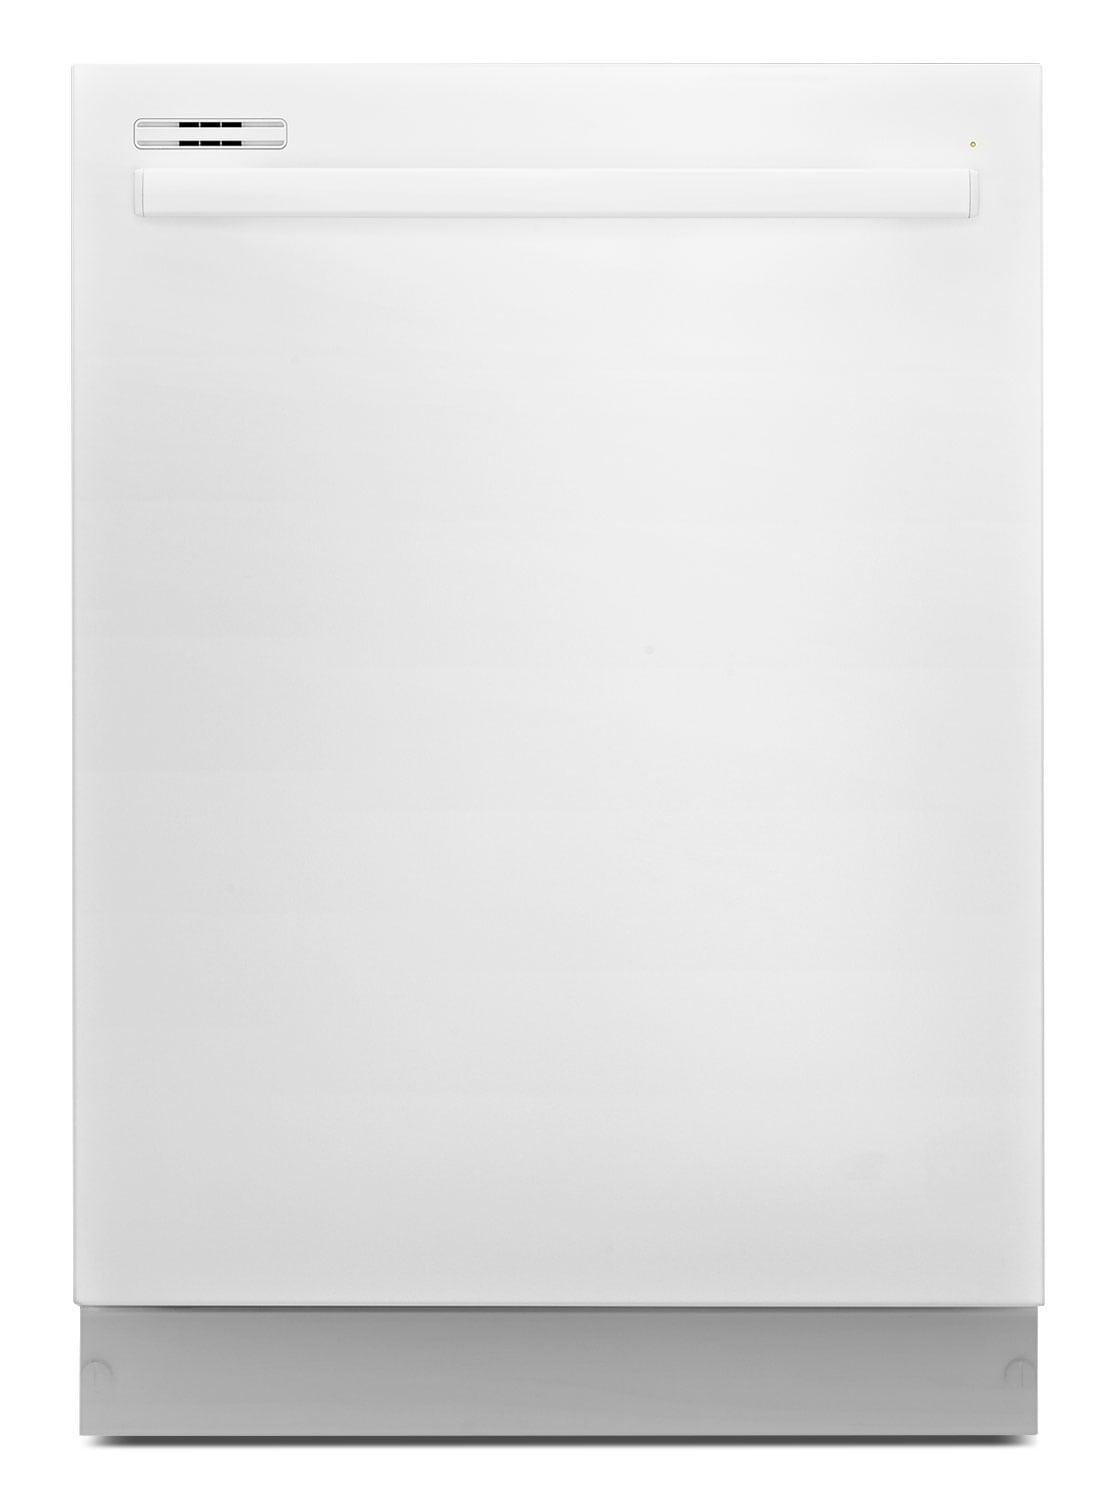 "Amana White 24"" Dishwasher - ADB1500ADW"